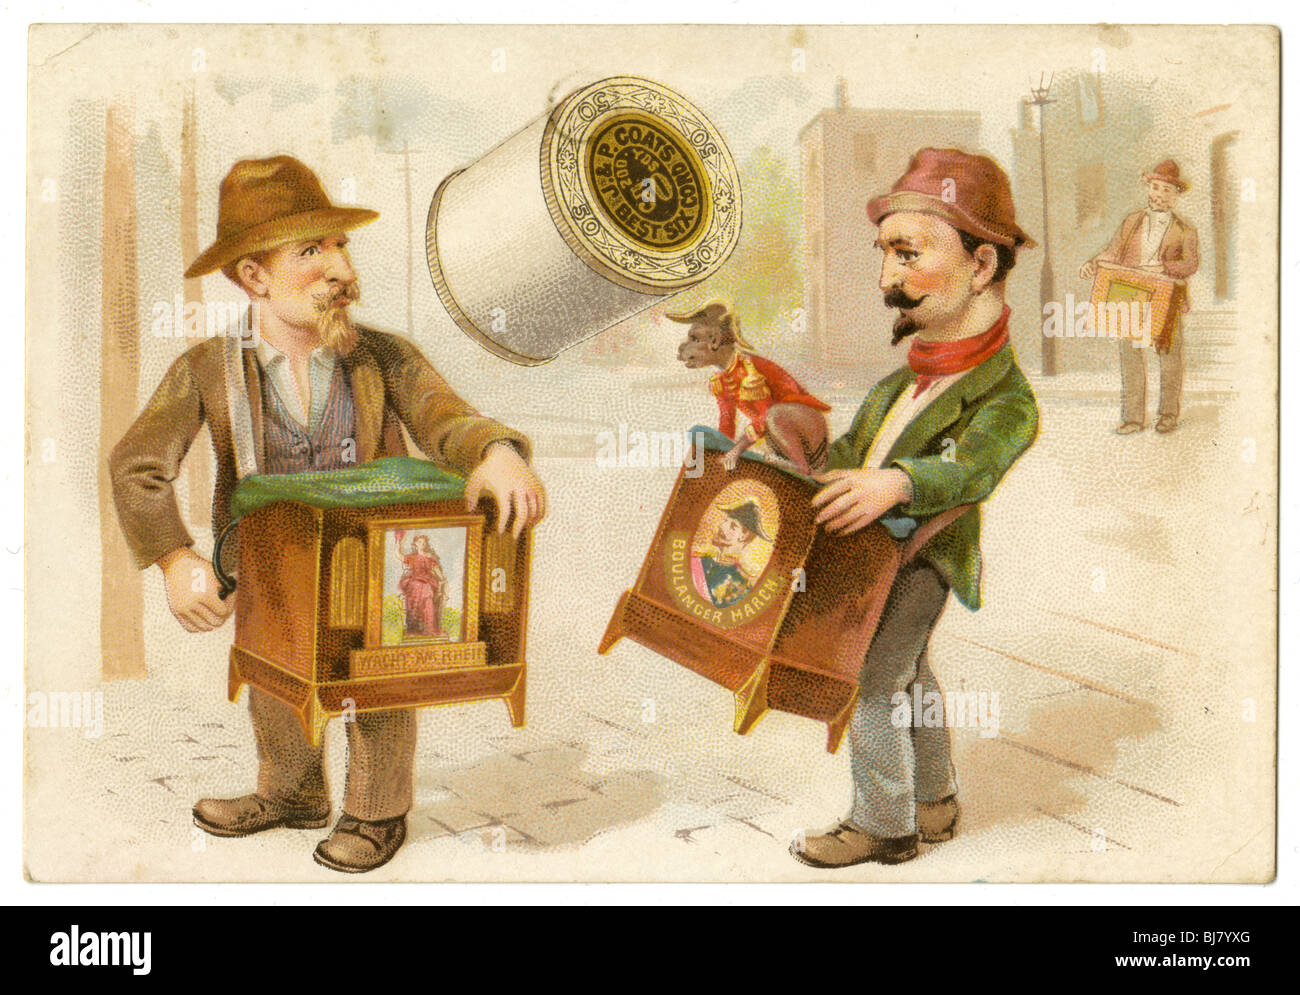 Circa 1890 Victorian trade card for J&P Coats thread. Organ grinders with monkey. - Stock Image